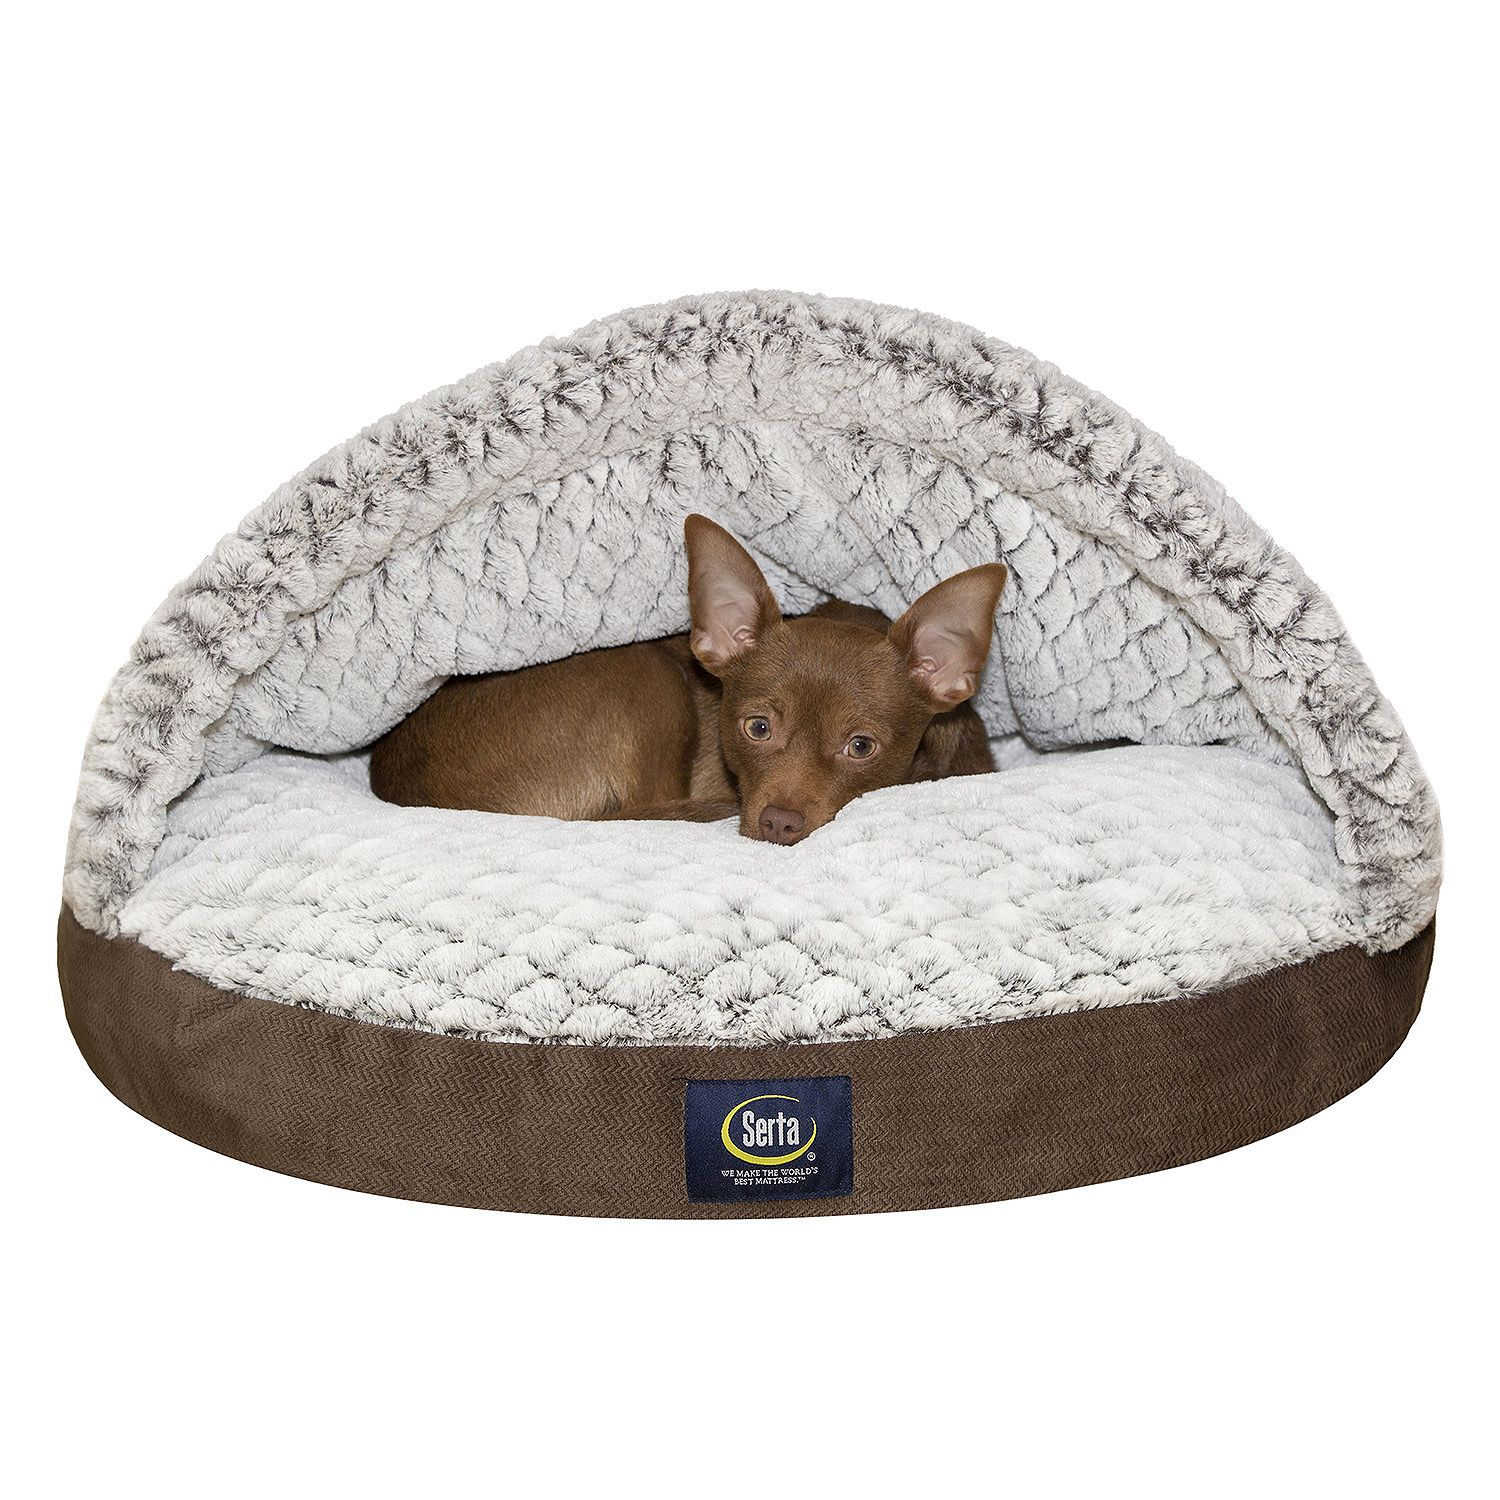 Serta Ultra Comfort Canopy Pet Bed Brown 25  sc 1 st  Walmart & Serta Ultra Comfort Canopy Pet Bed Brown 25 - Walmart.com